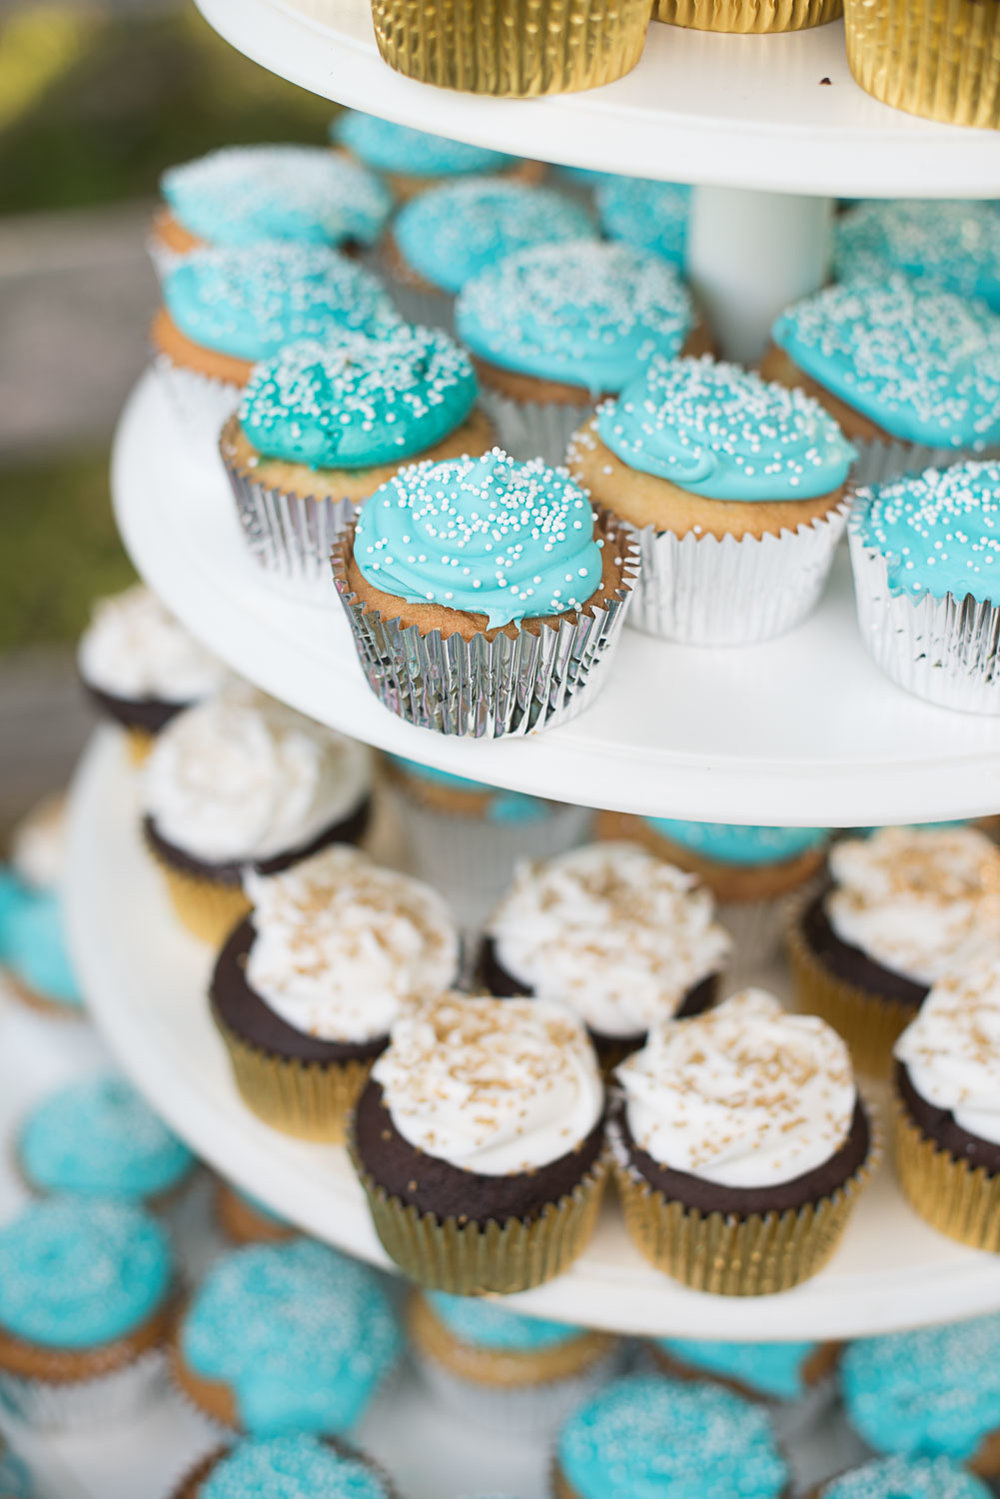 114 cupcake tower at reception.jpg